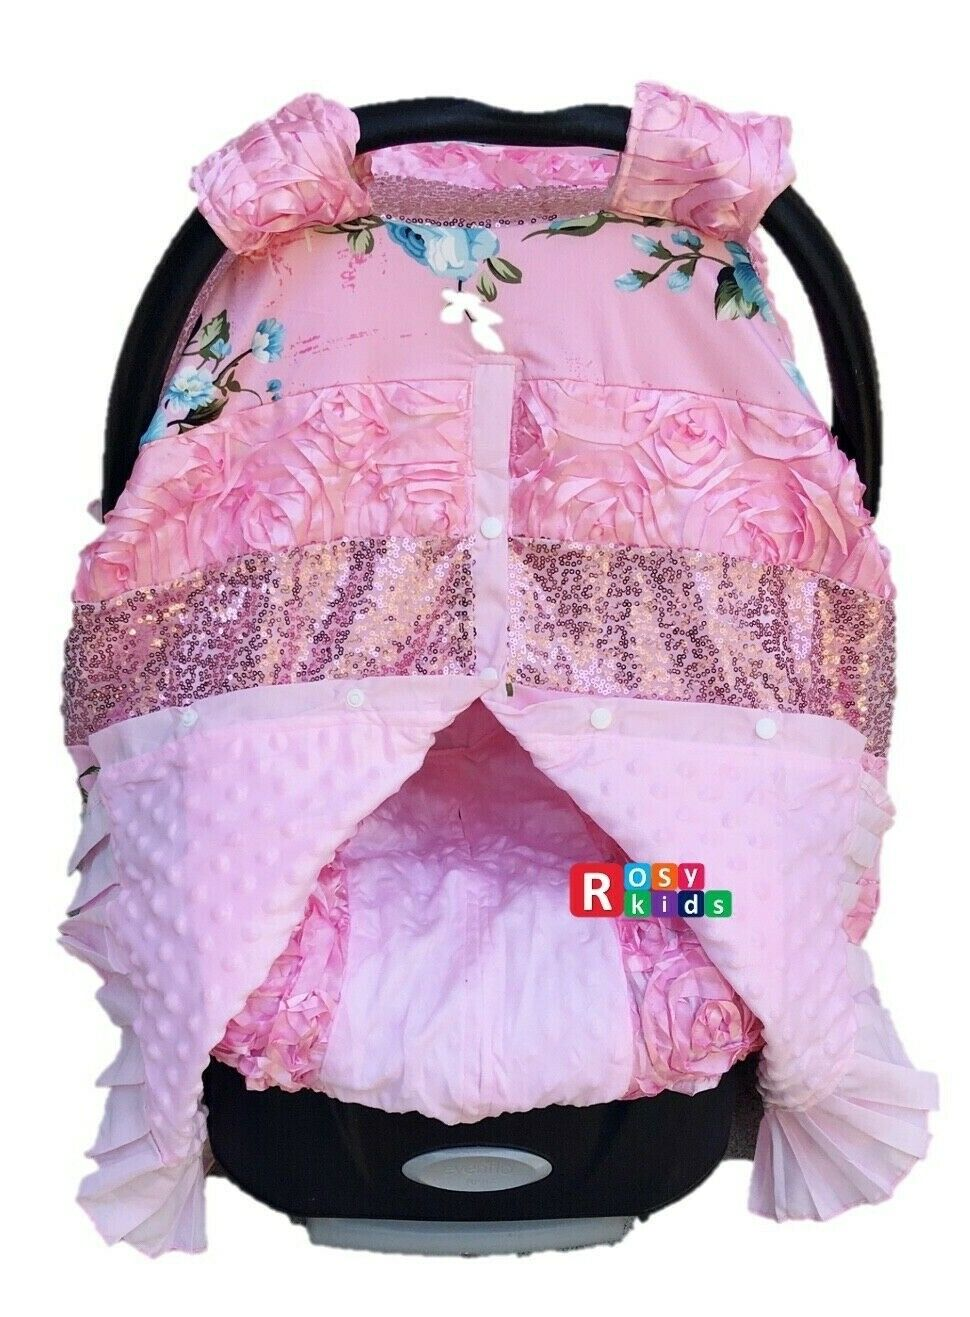 Baby Trend Infant Car Seat Arch Canopy Support For Sale Online Ebay